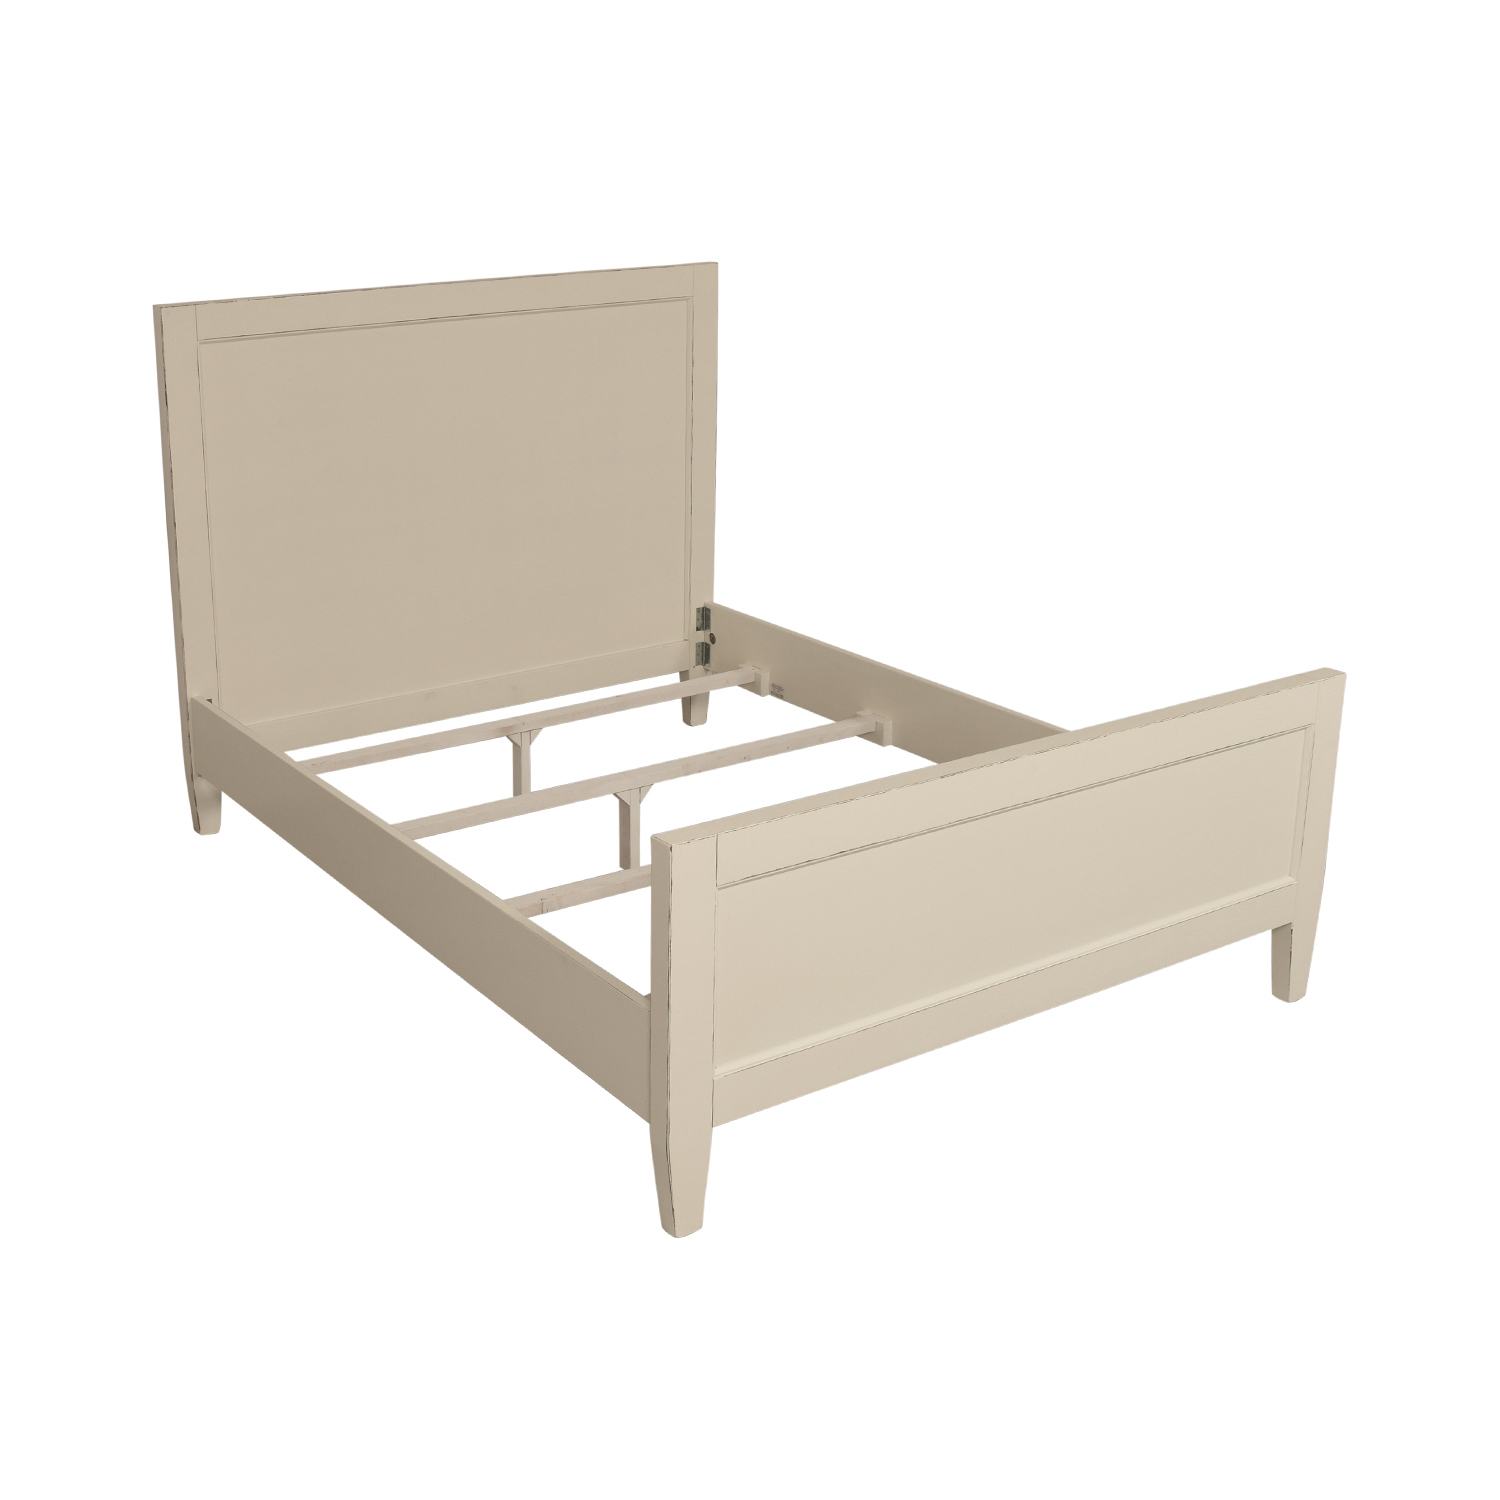 Crate & Barrel Crate & Barrel Queen Bed Frame dimensions